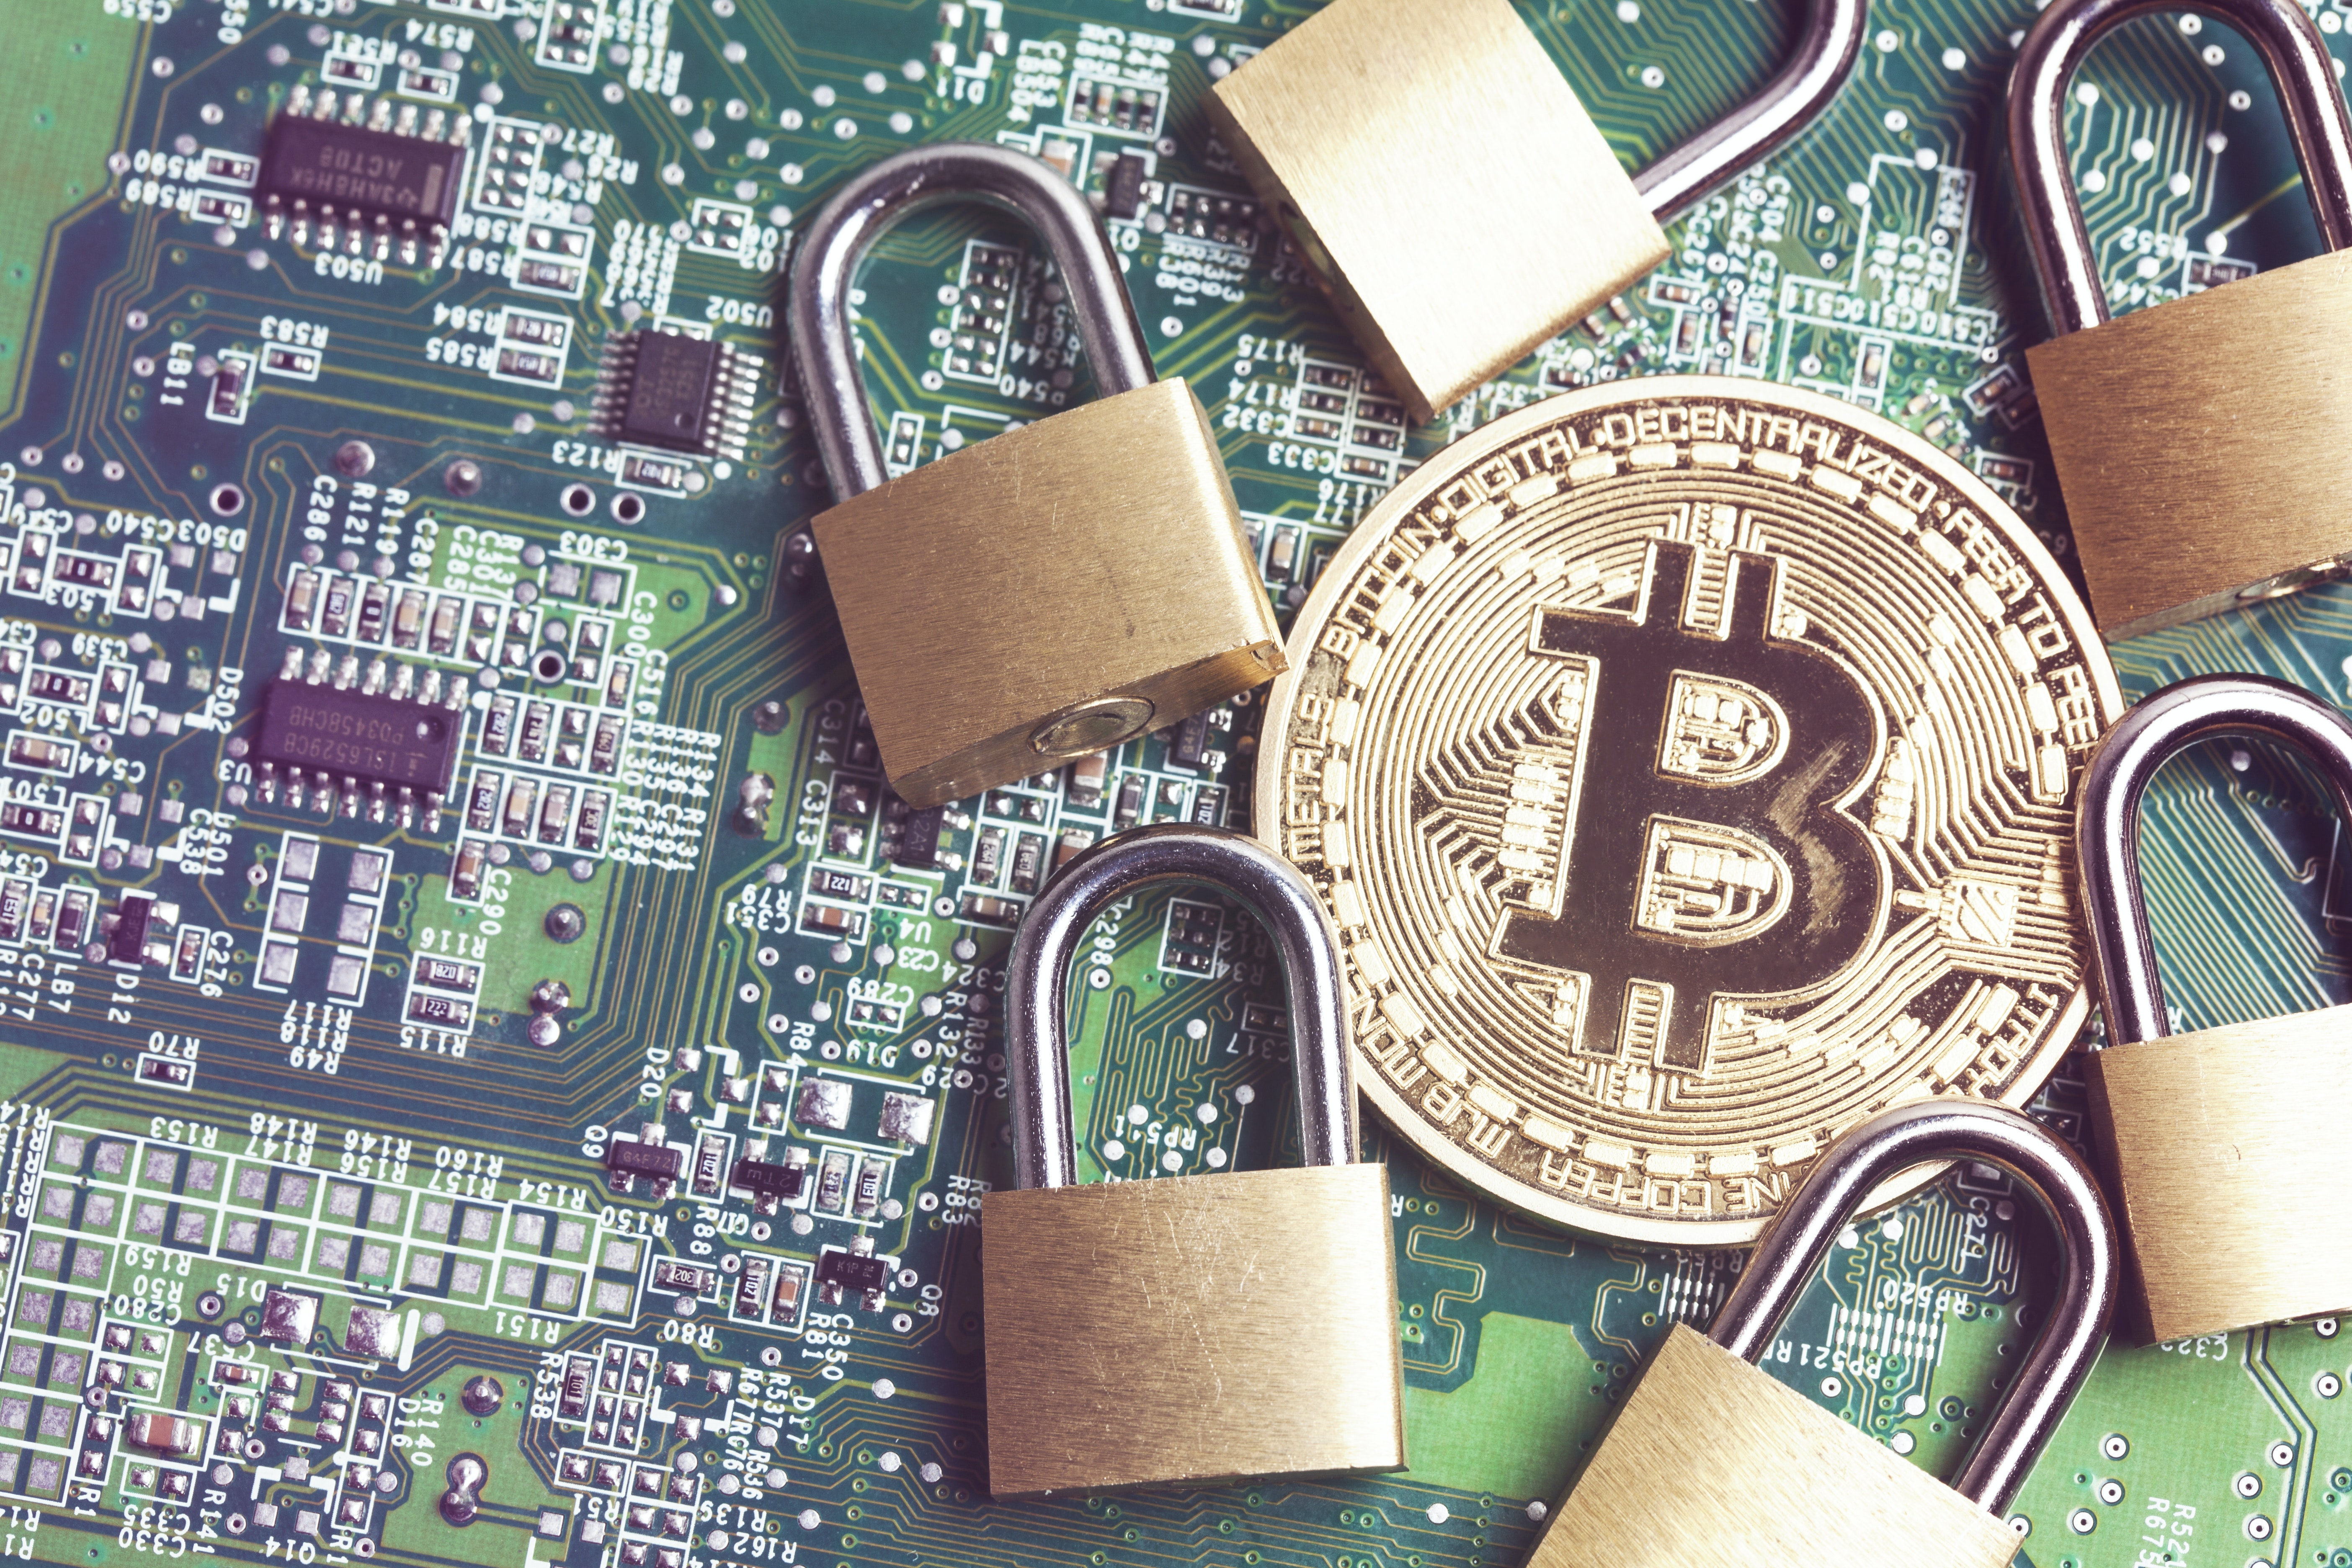 What the Coincheck hack tells us about how Australian regulators will handle a cryptocurrency hack